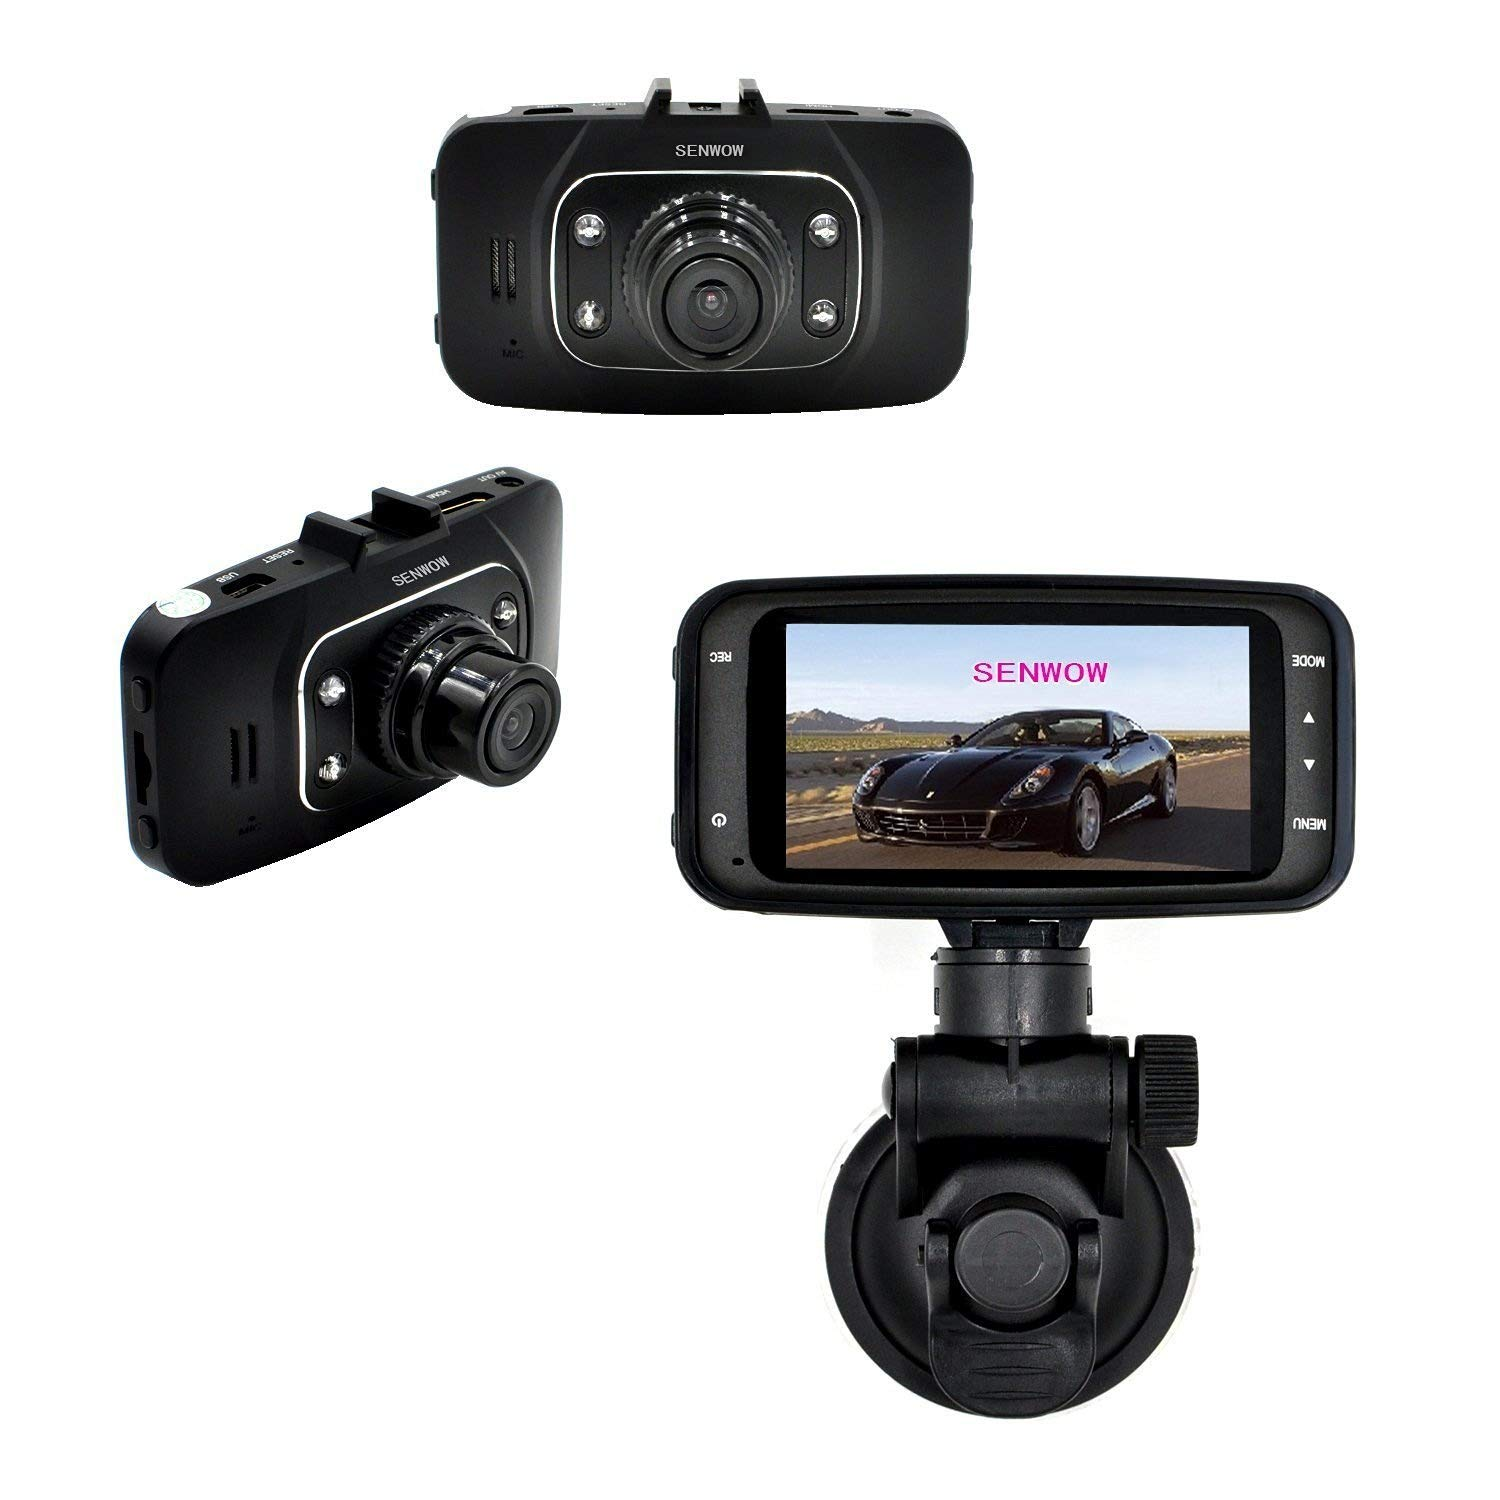 "SENWOW Dash Cam (32GB Card Included) 1080P Full HD Car Camera 2.7"" LCD Driving Video Dashboard DVR Built in G-Sensor, Loop Recording, Night Vision, Parking Monitor, Motion Detection, WDR, GS8000+32G"